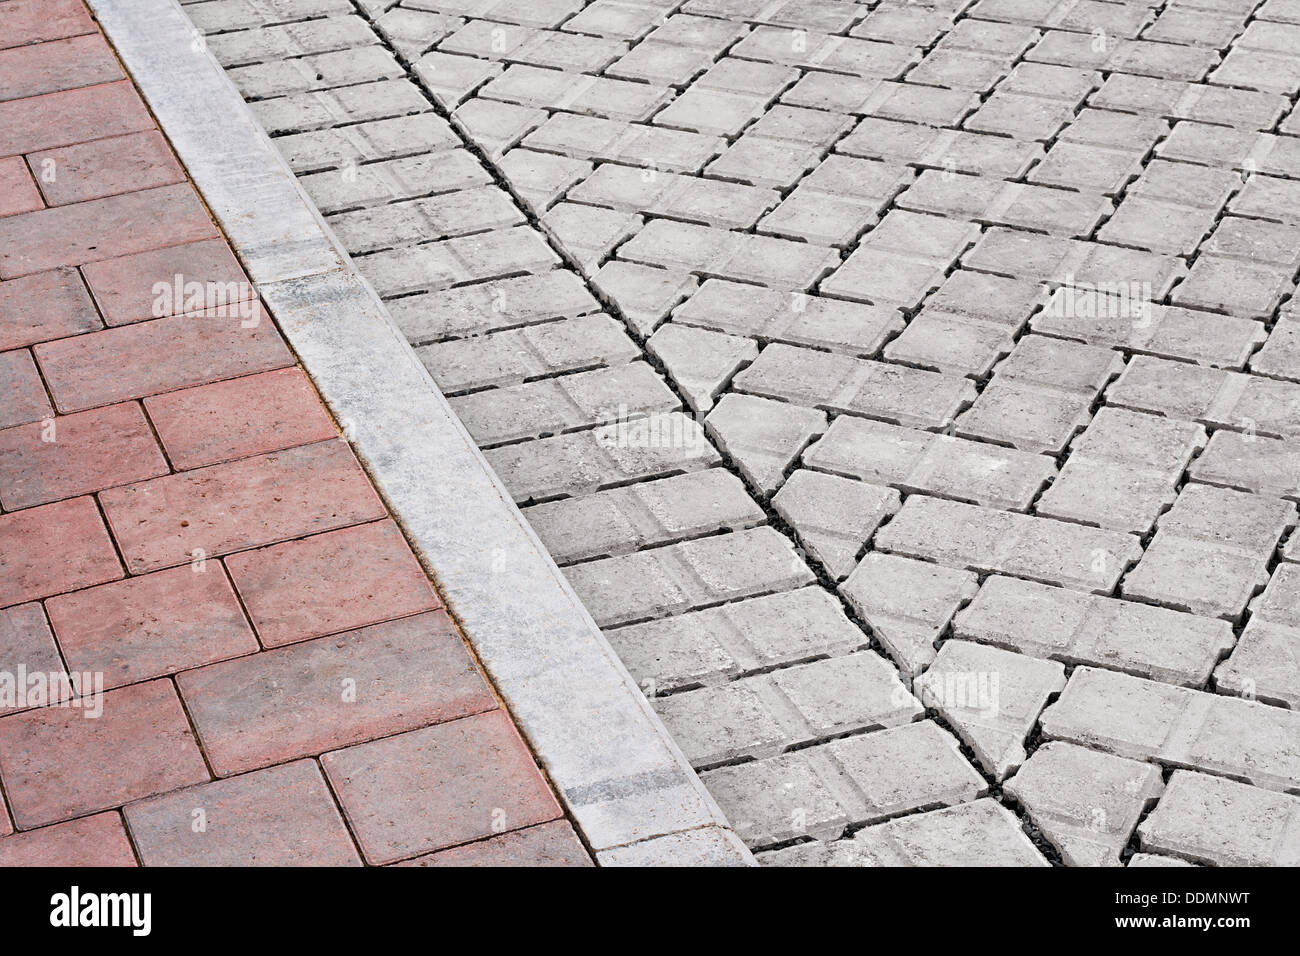 Brick paving types with pink sidewalk, curb and drive made from plain interlocking concrete bricks - Stock Image